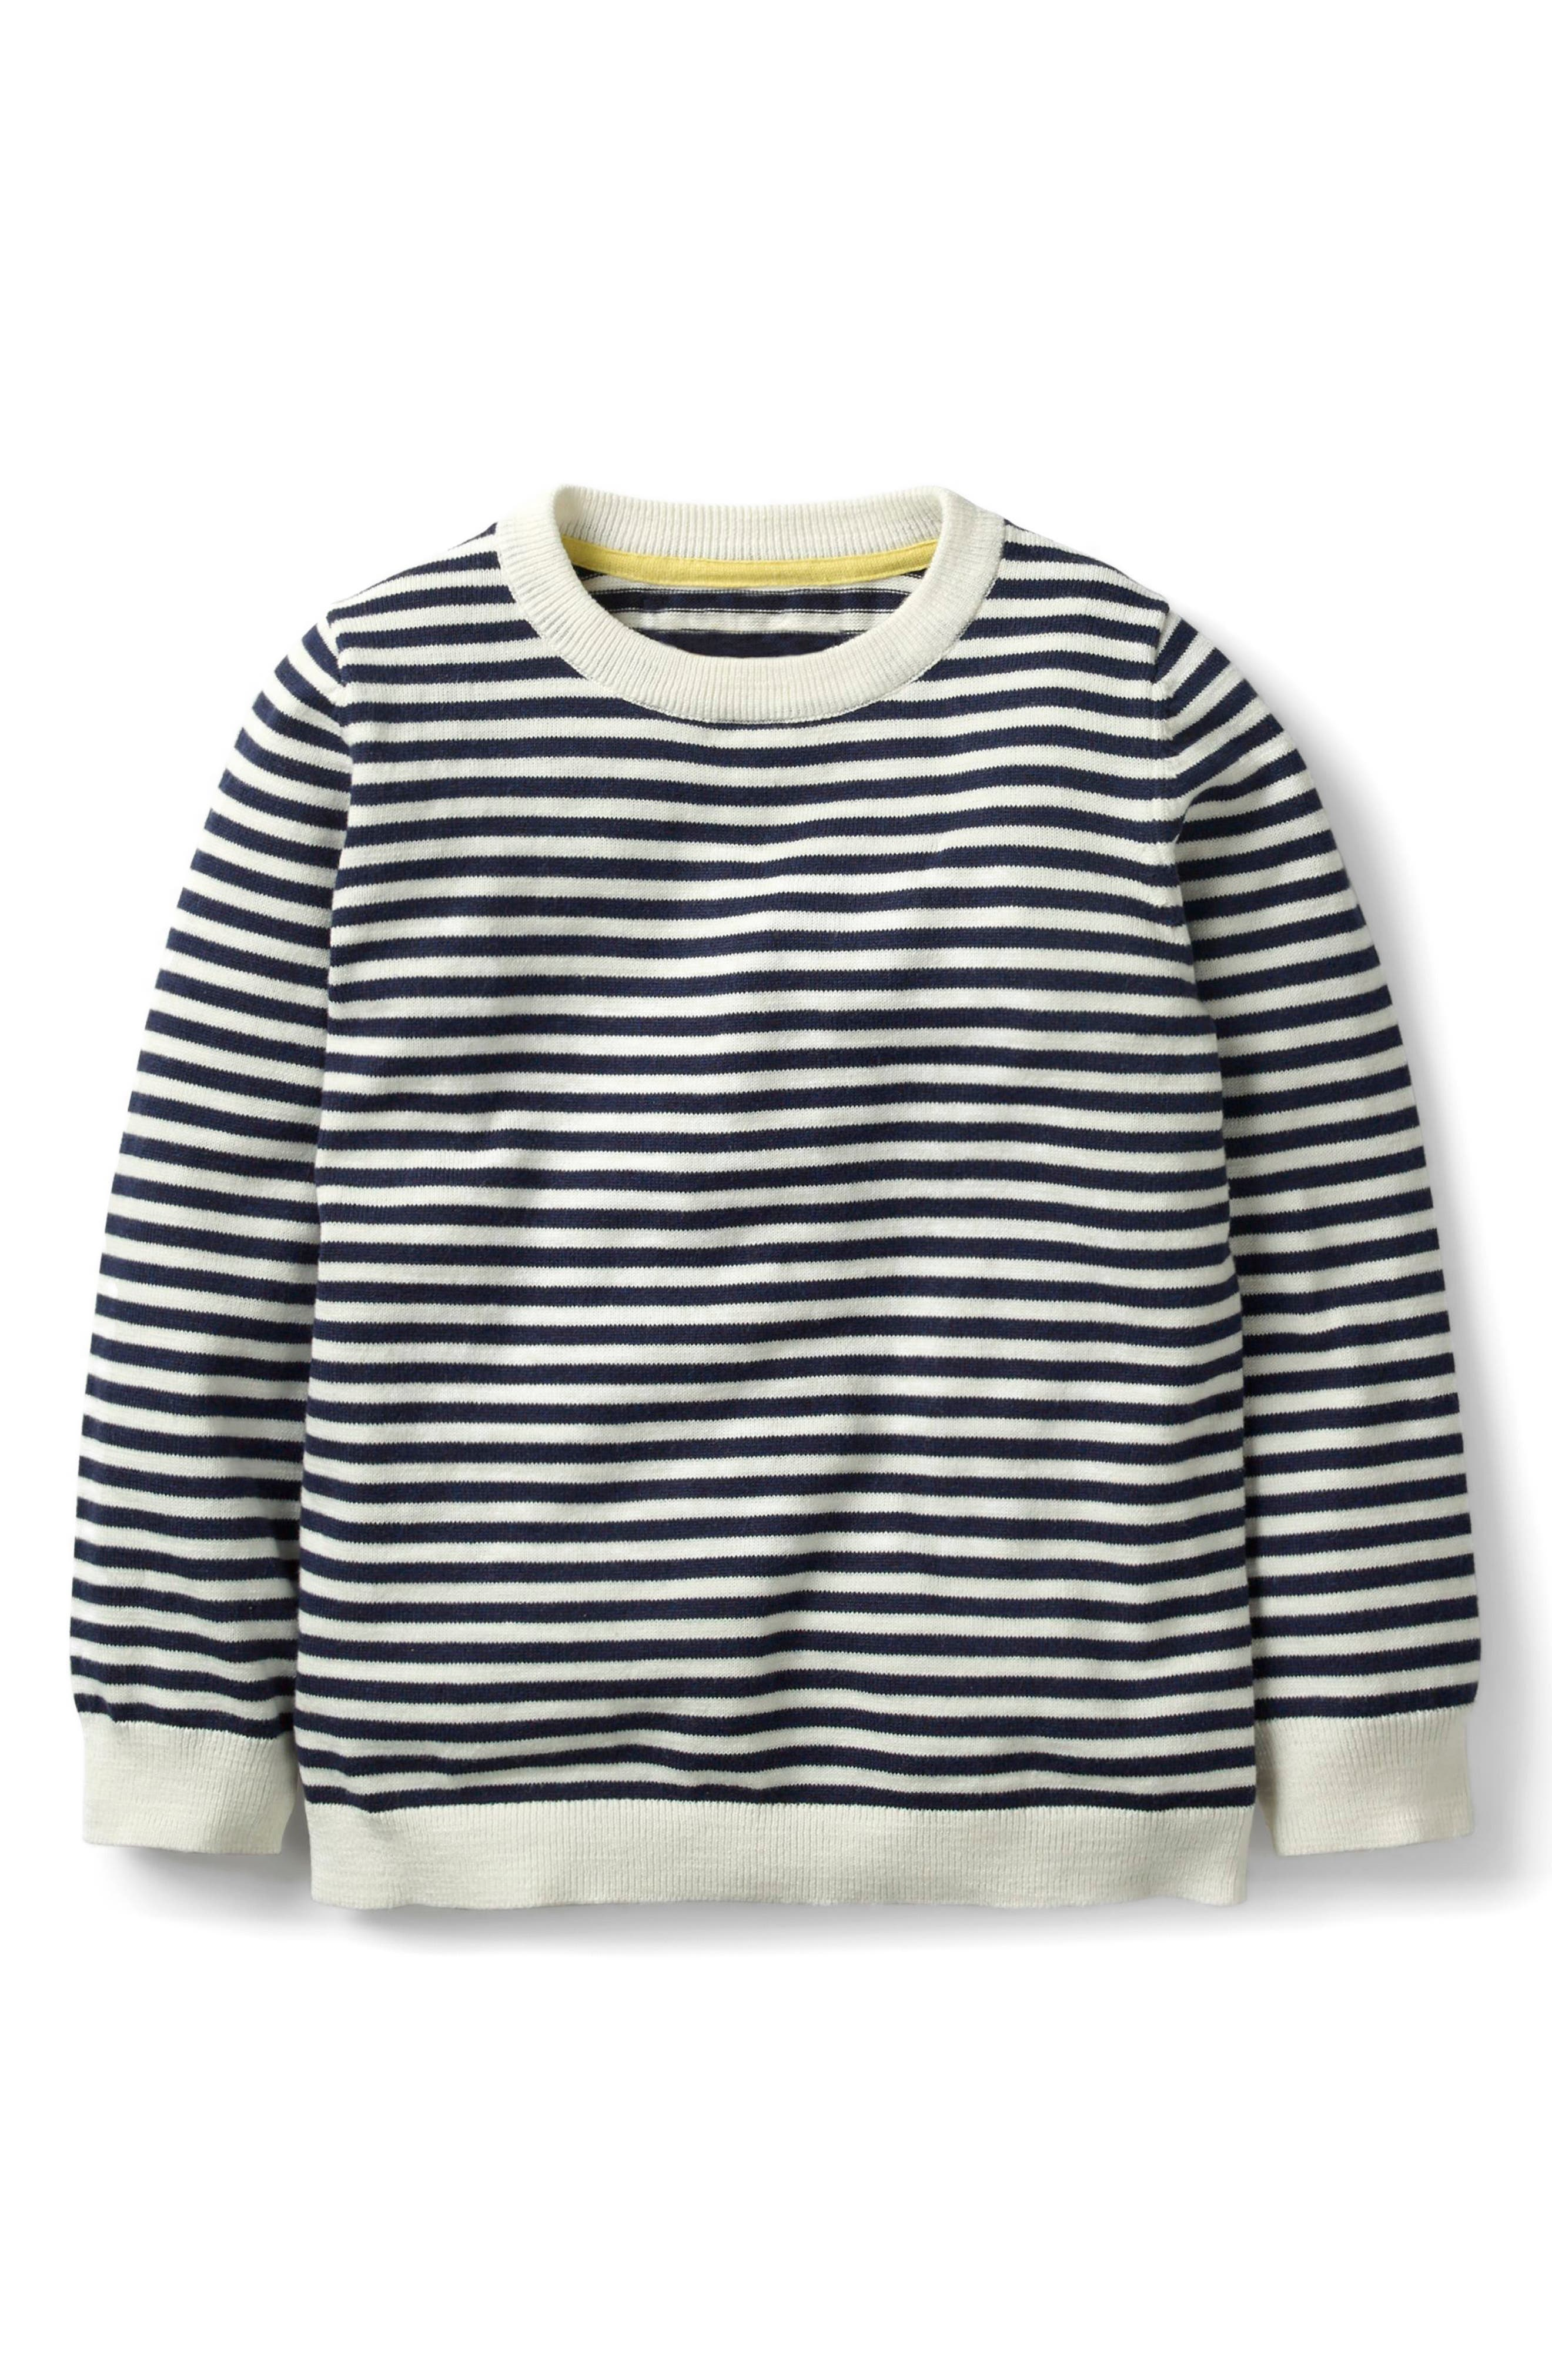 Cotton & Cashmere Sweater,                         Main,                         color, School Navy/ Ivory